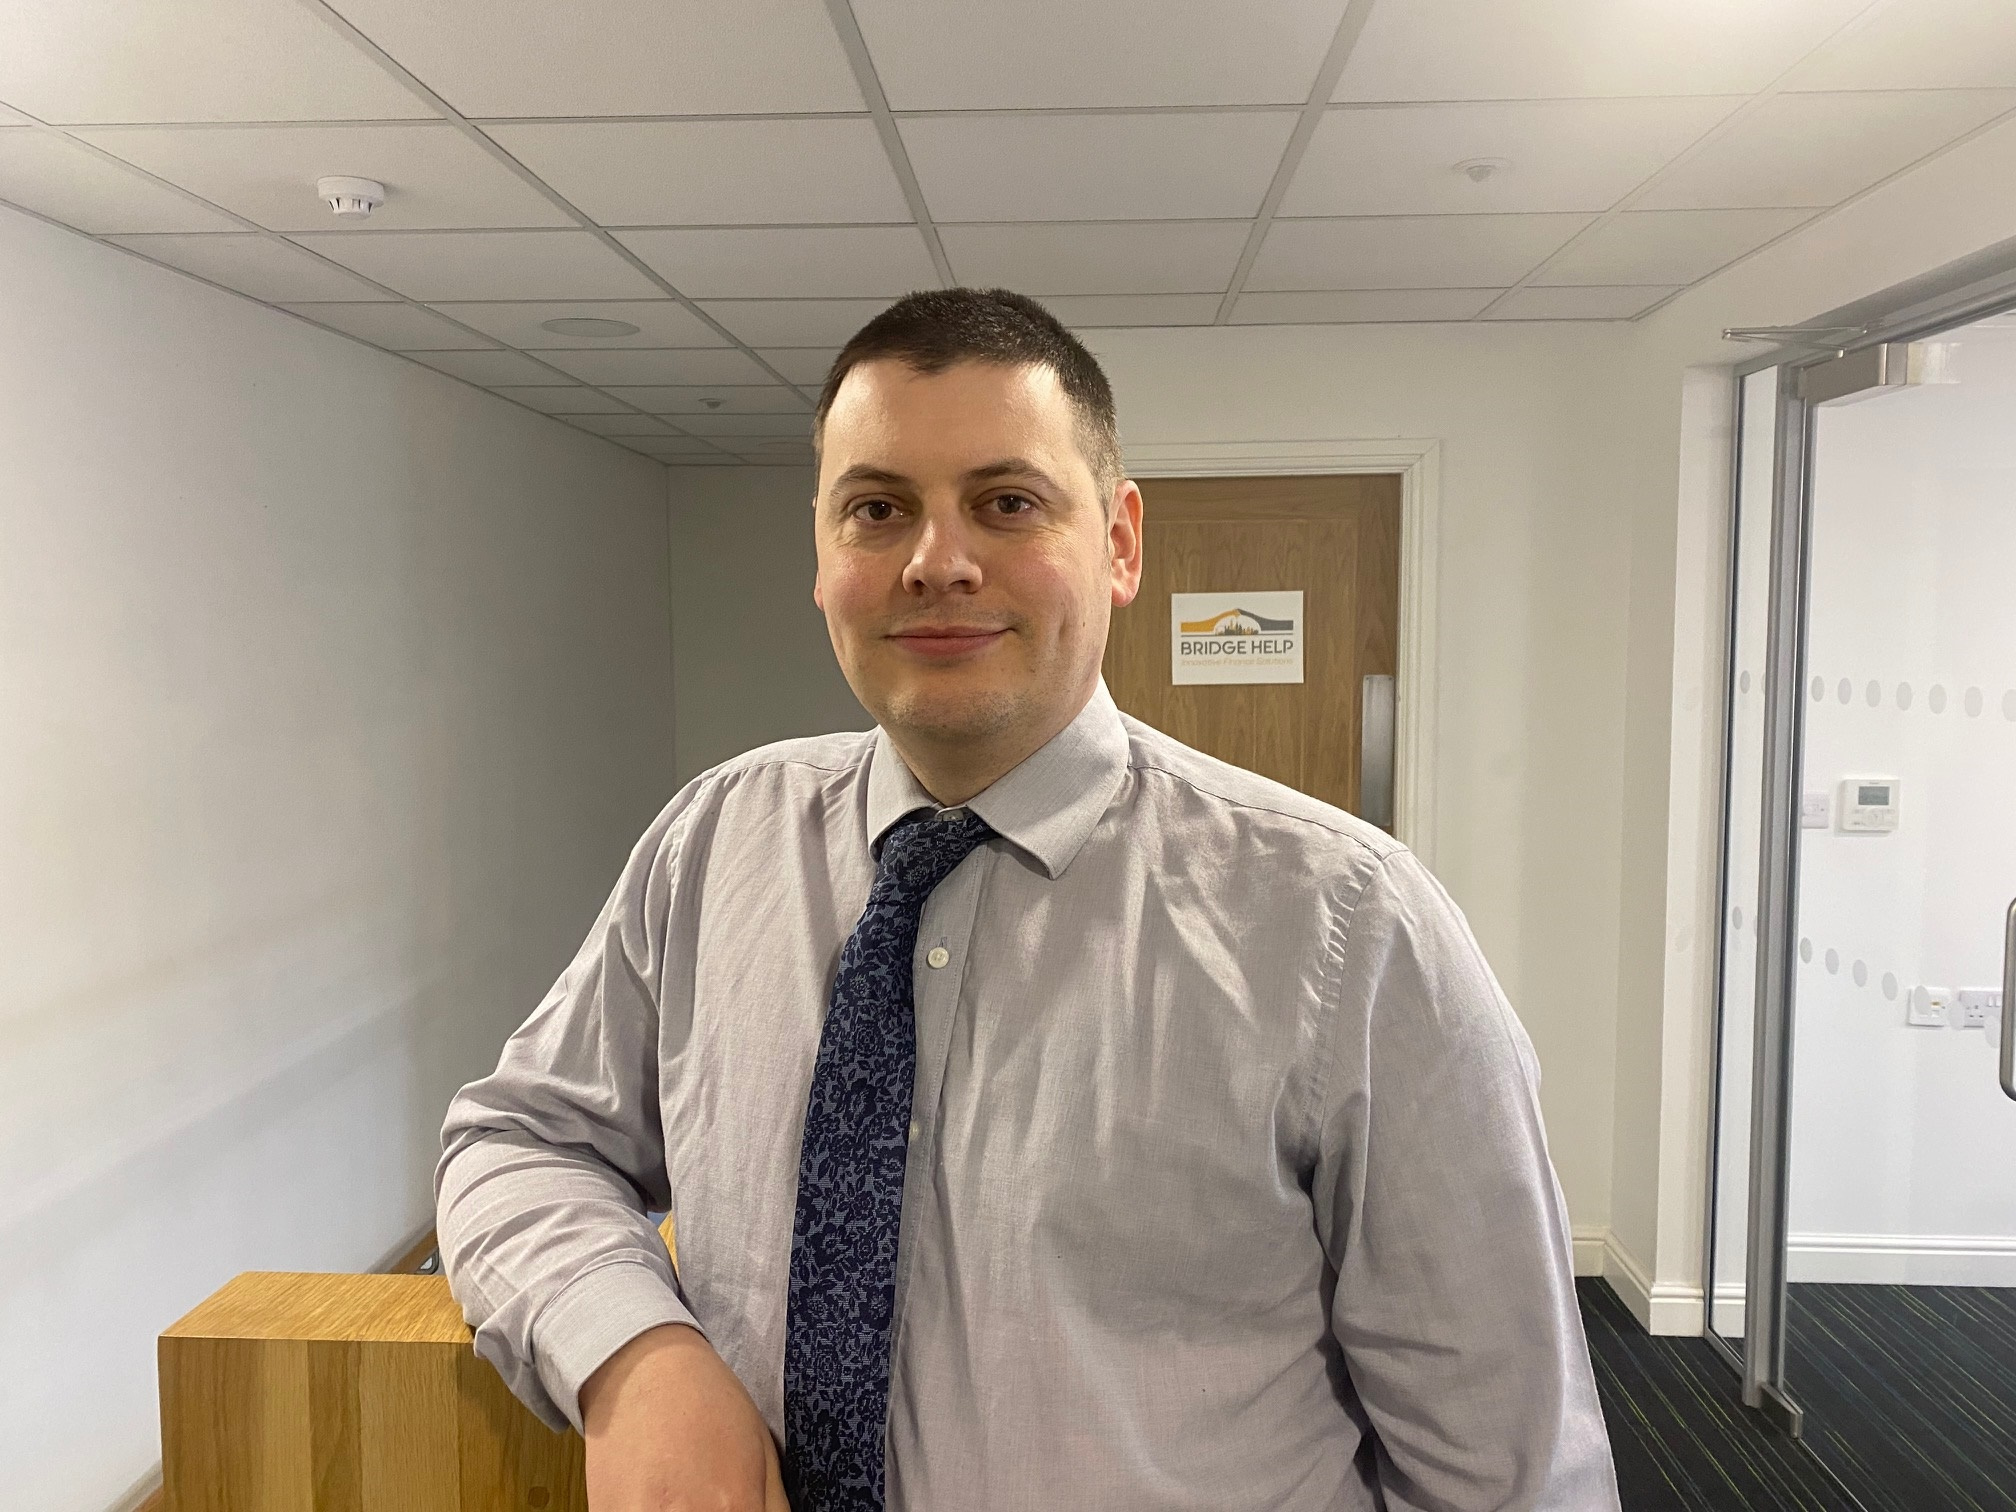 Continued growth for Bridge Help prompts appointment of  dedicated Loan Manager